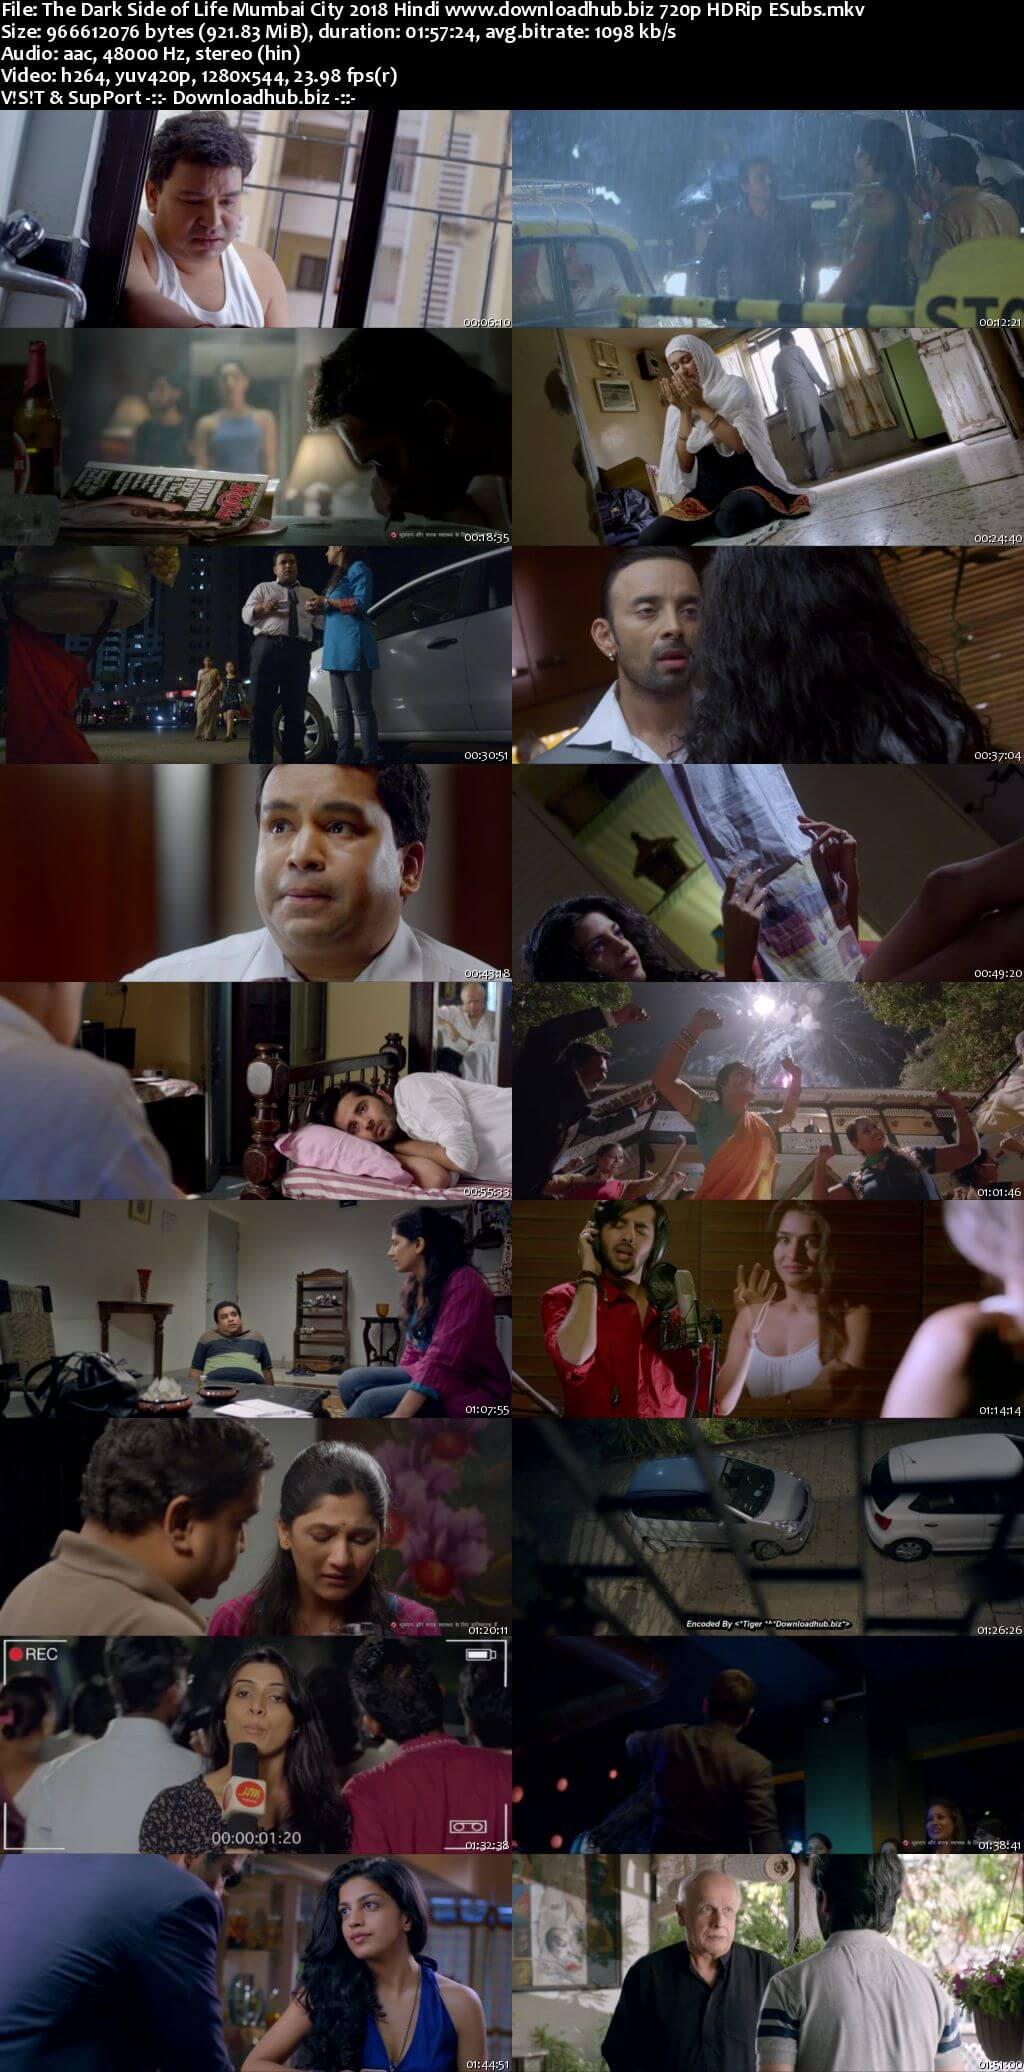 The Dark Side of Life Mumbai City 2018 Hindi 720p HDRip ESubs